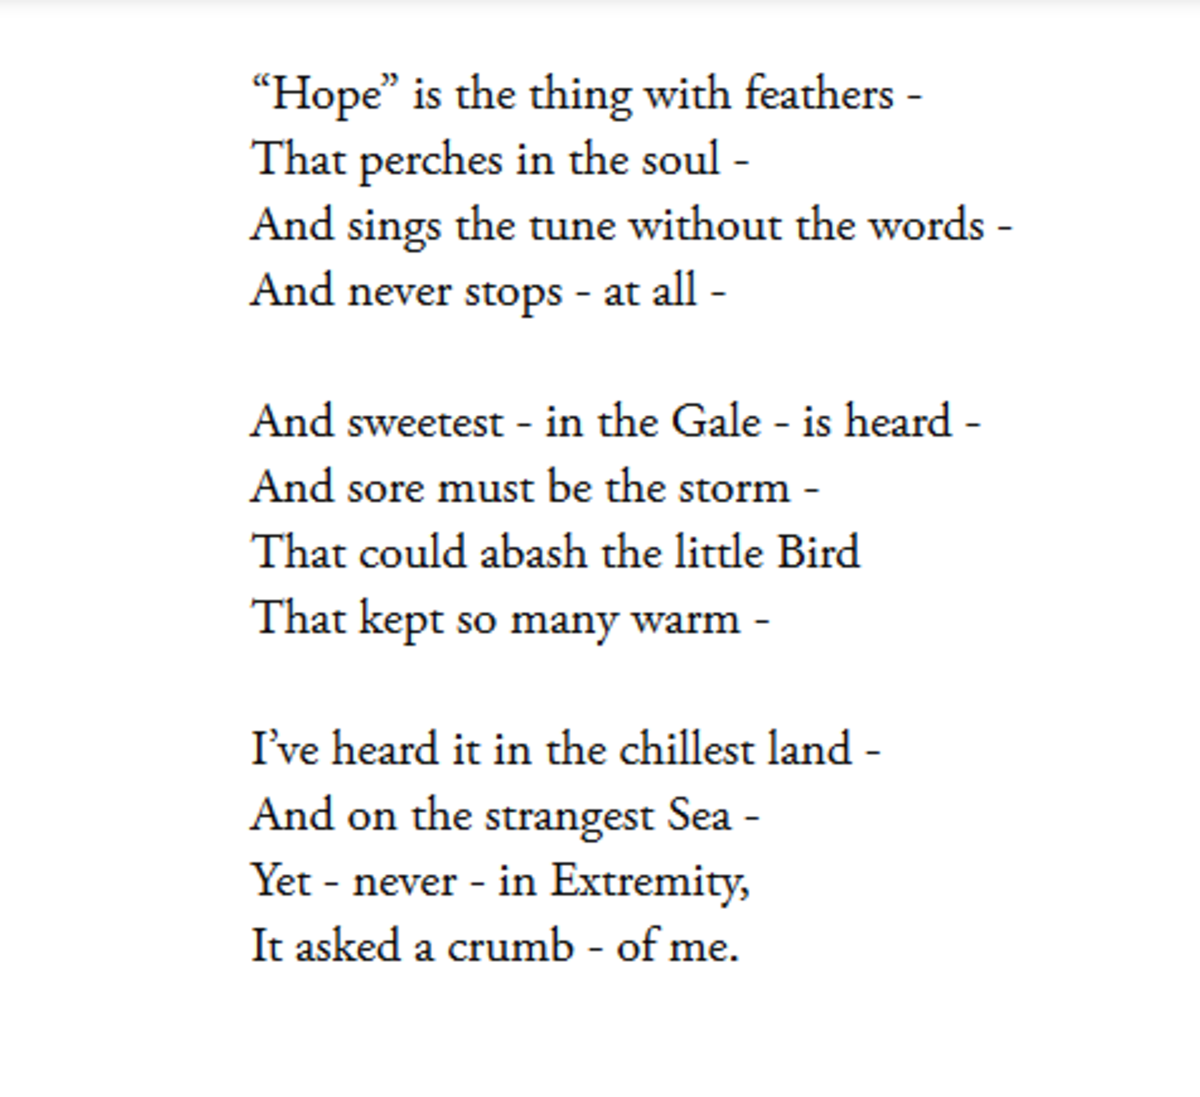 Analysis Of Poem Hope Is The Thing With Feathers By Emily